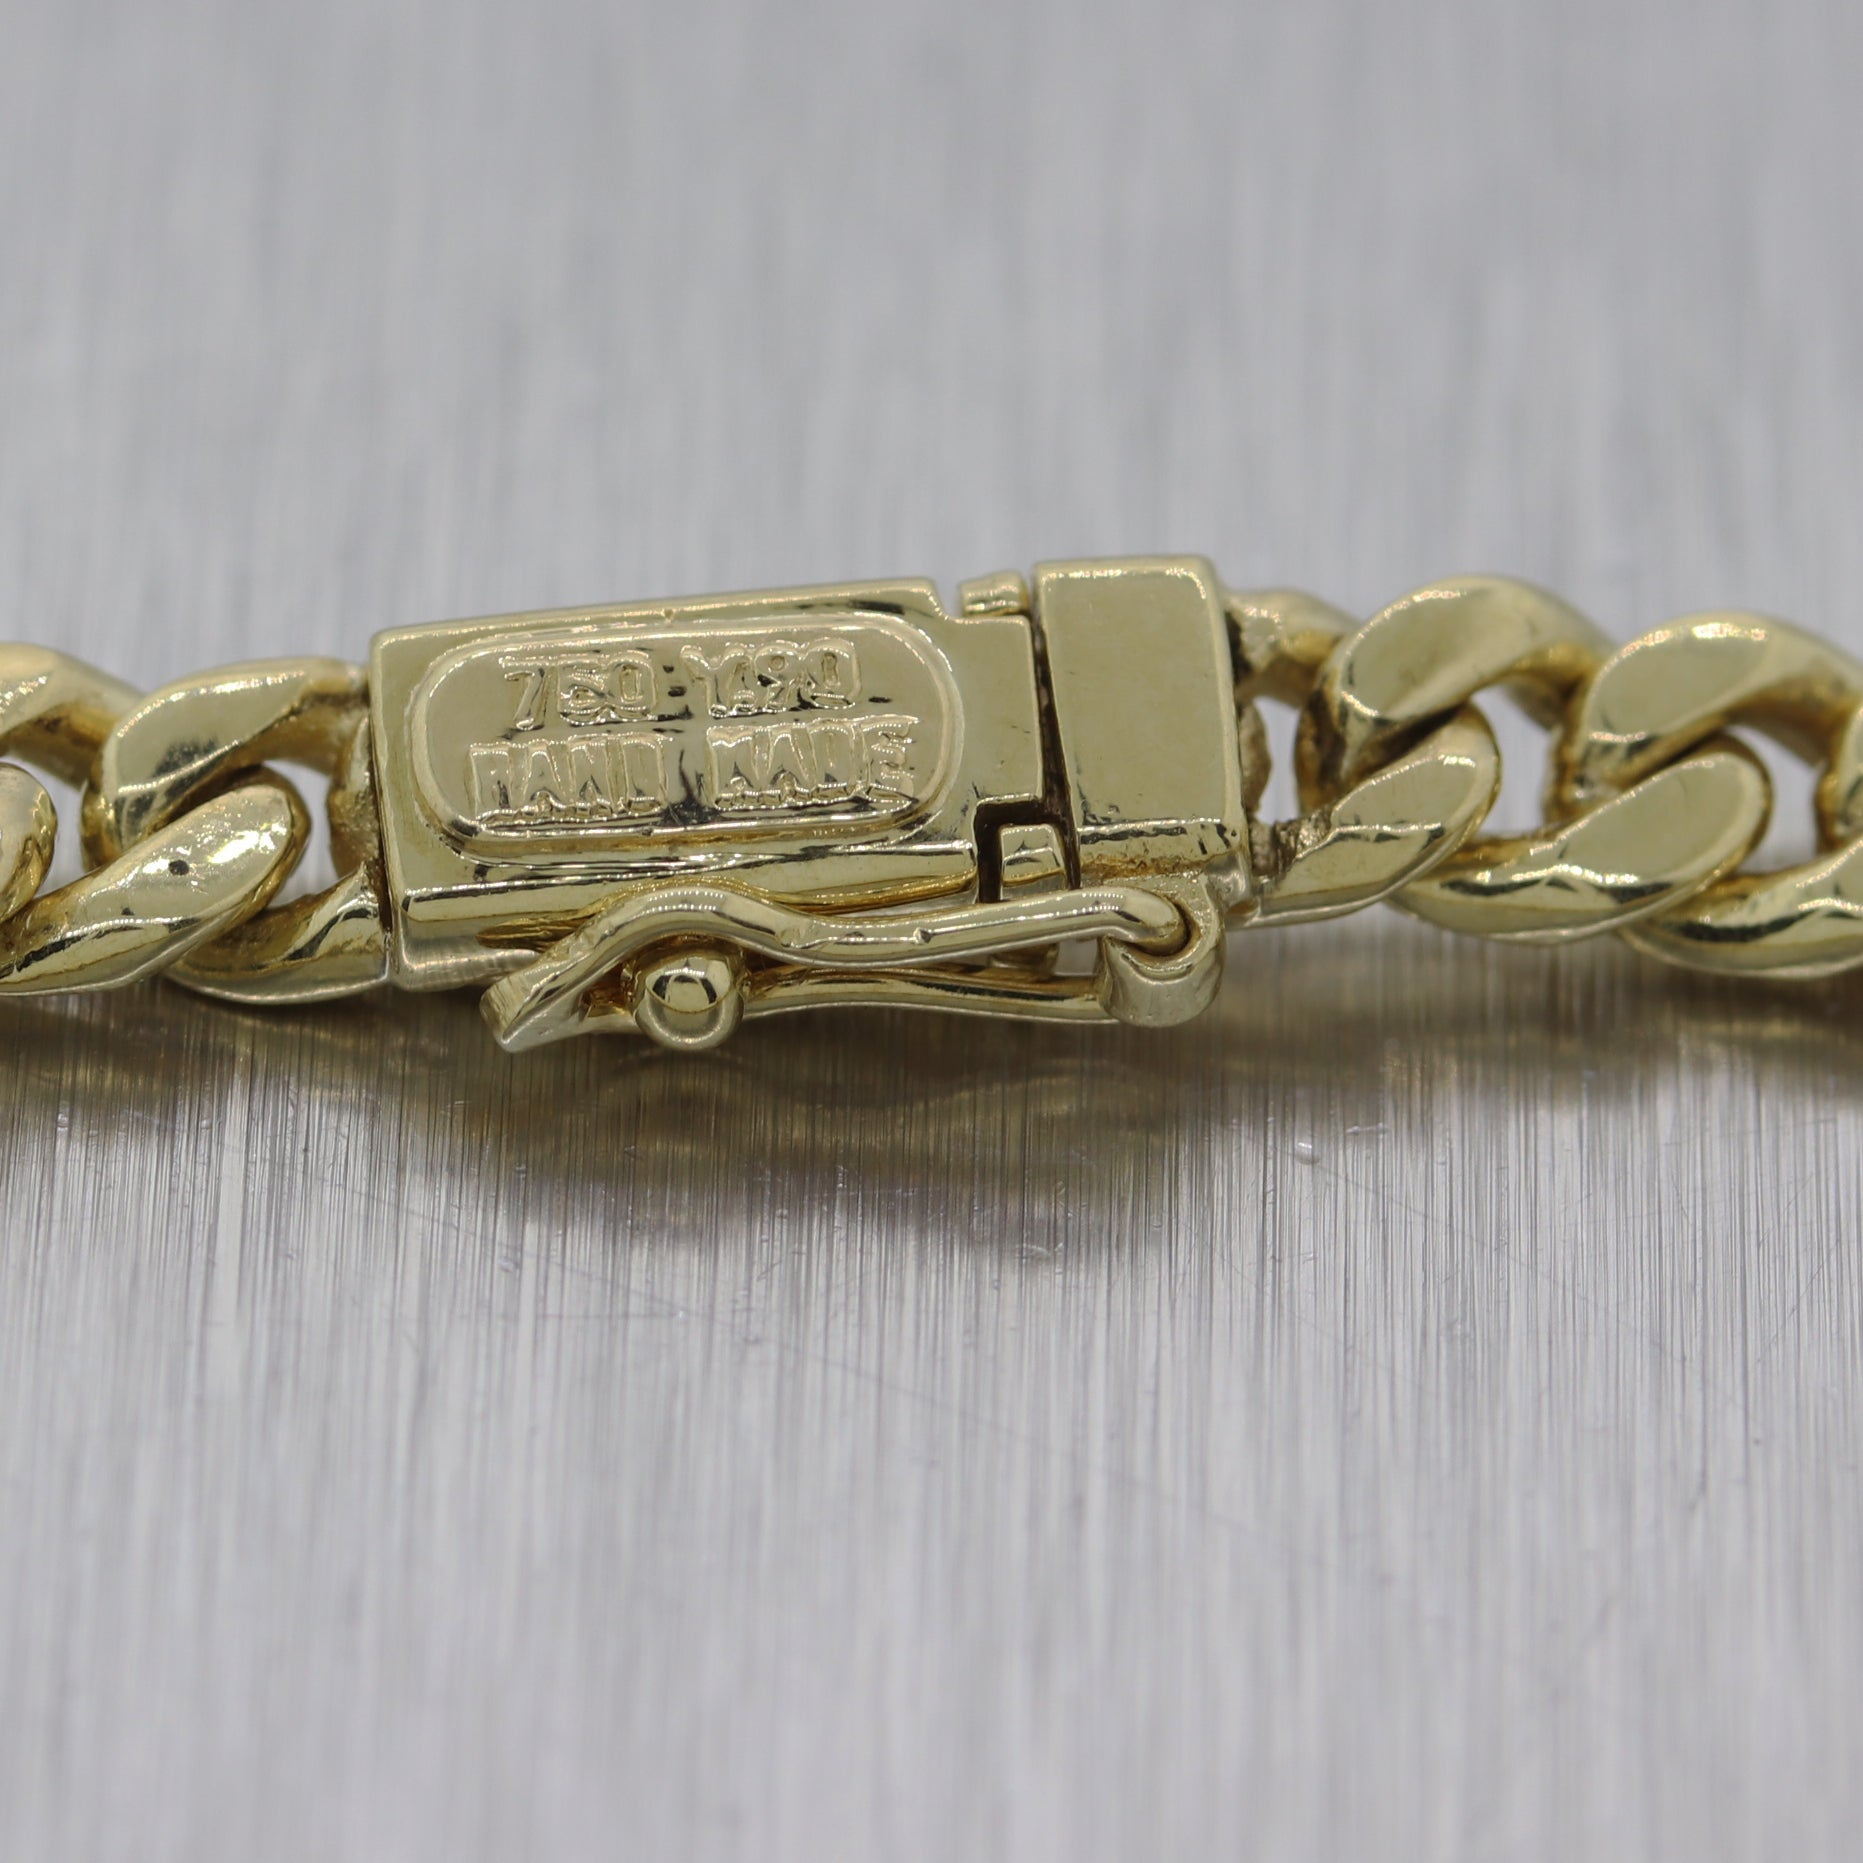 Modern 23.20G 18k Yellow Gold Miami Cuban Link Bracelet